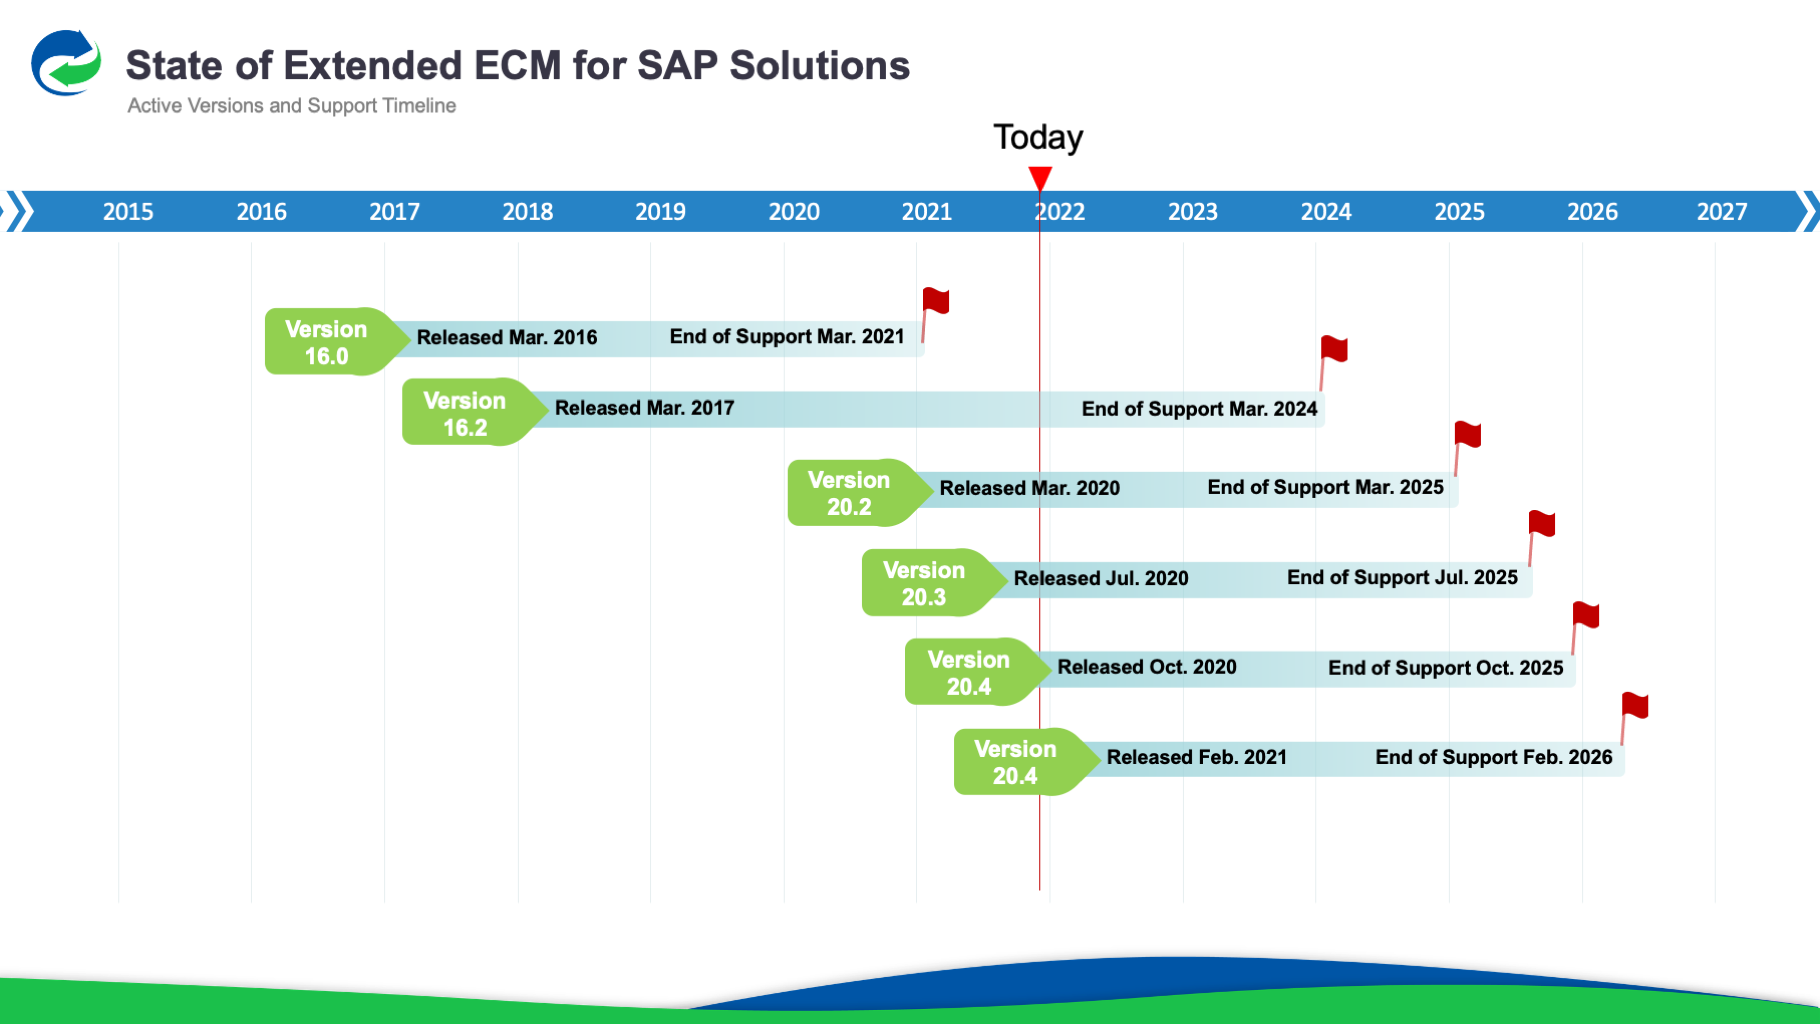 Extended ECM Active Version and Support Timeline